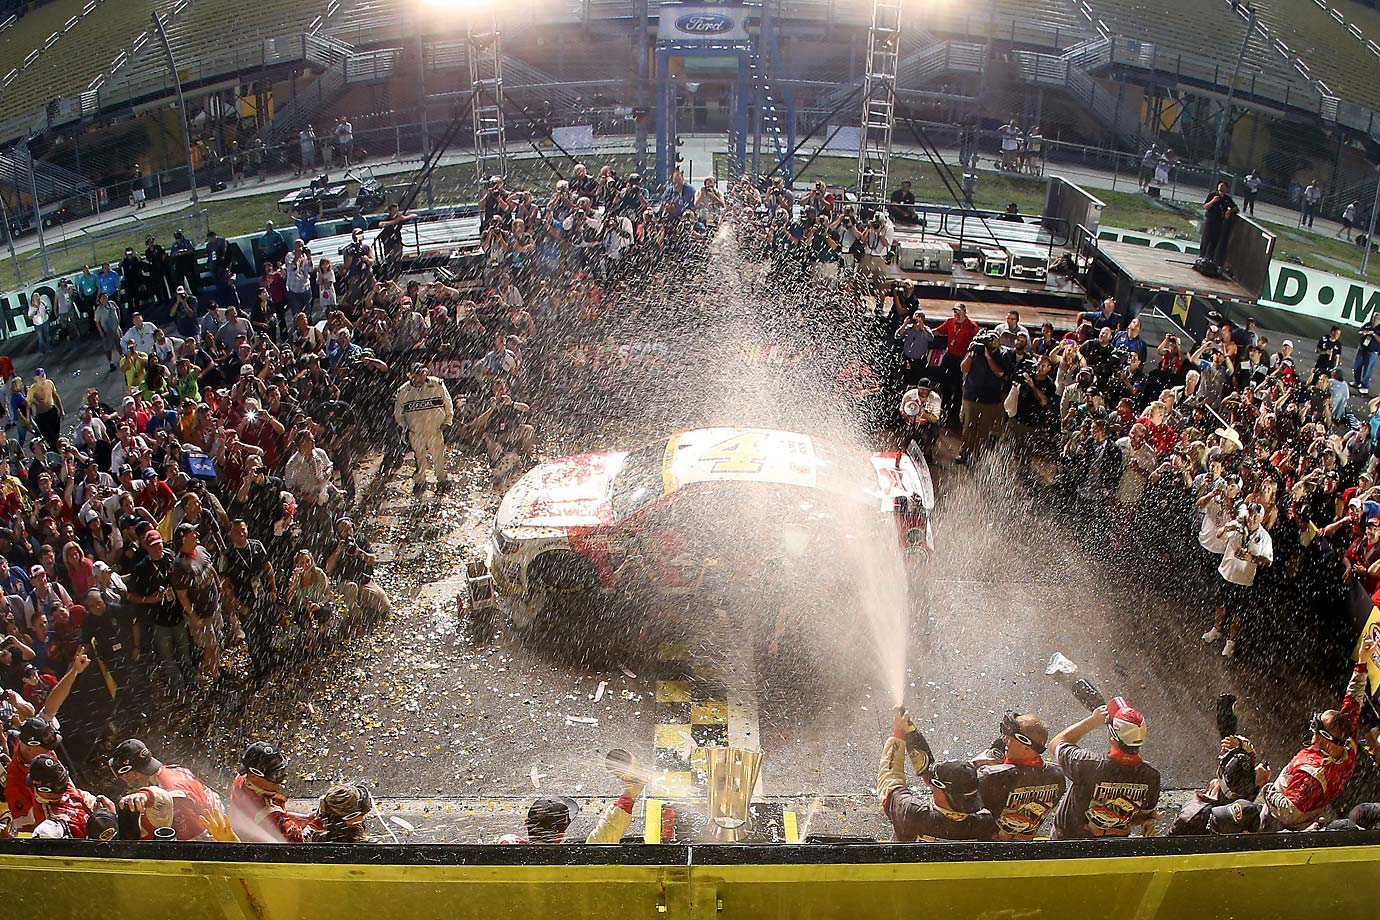 Kevin Harvick celebrates with champagne in victory lane after winning the NASCAR Sprint Cup Series Ford EcoBoost 400 at Homestead-Miami Speedway, his fifth checkered flag of the 2014.